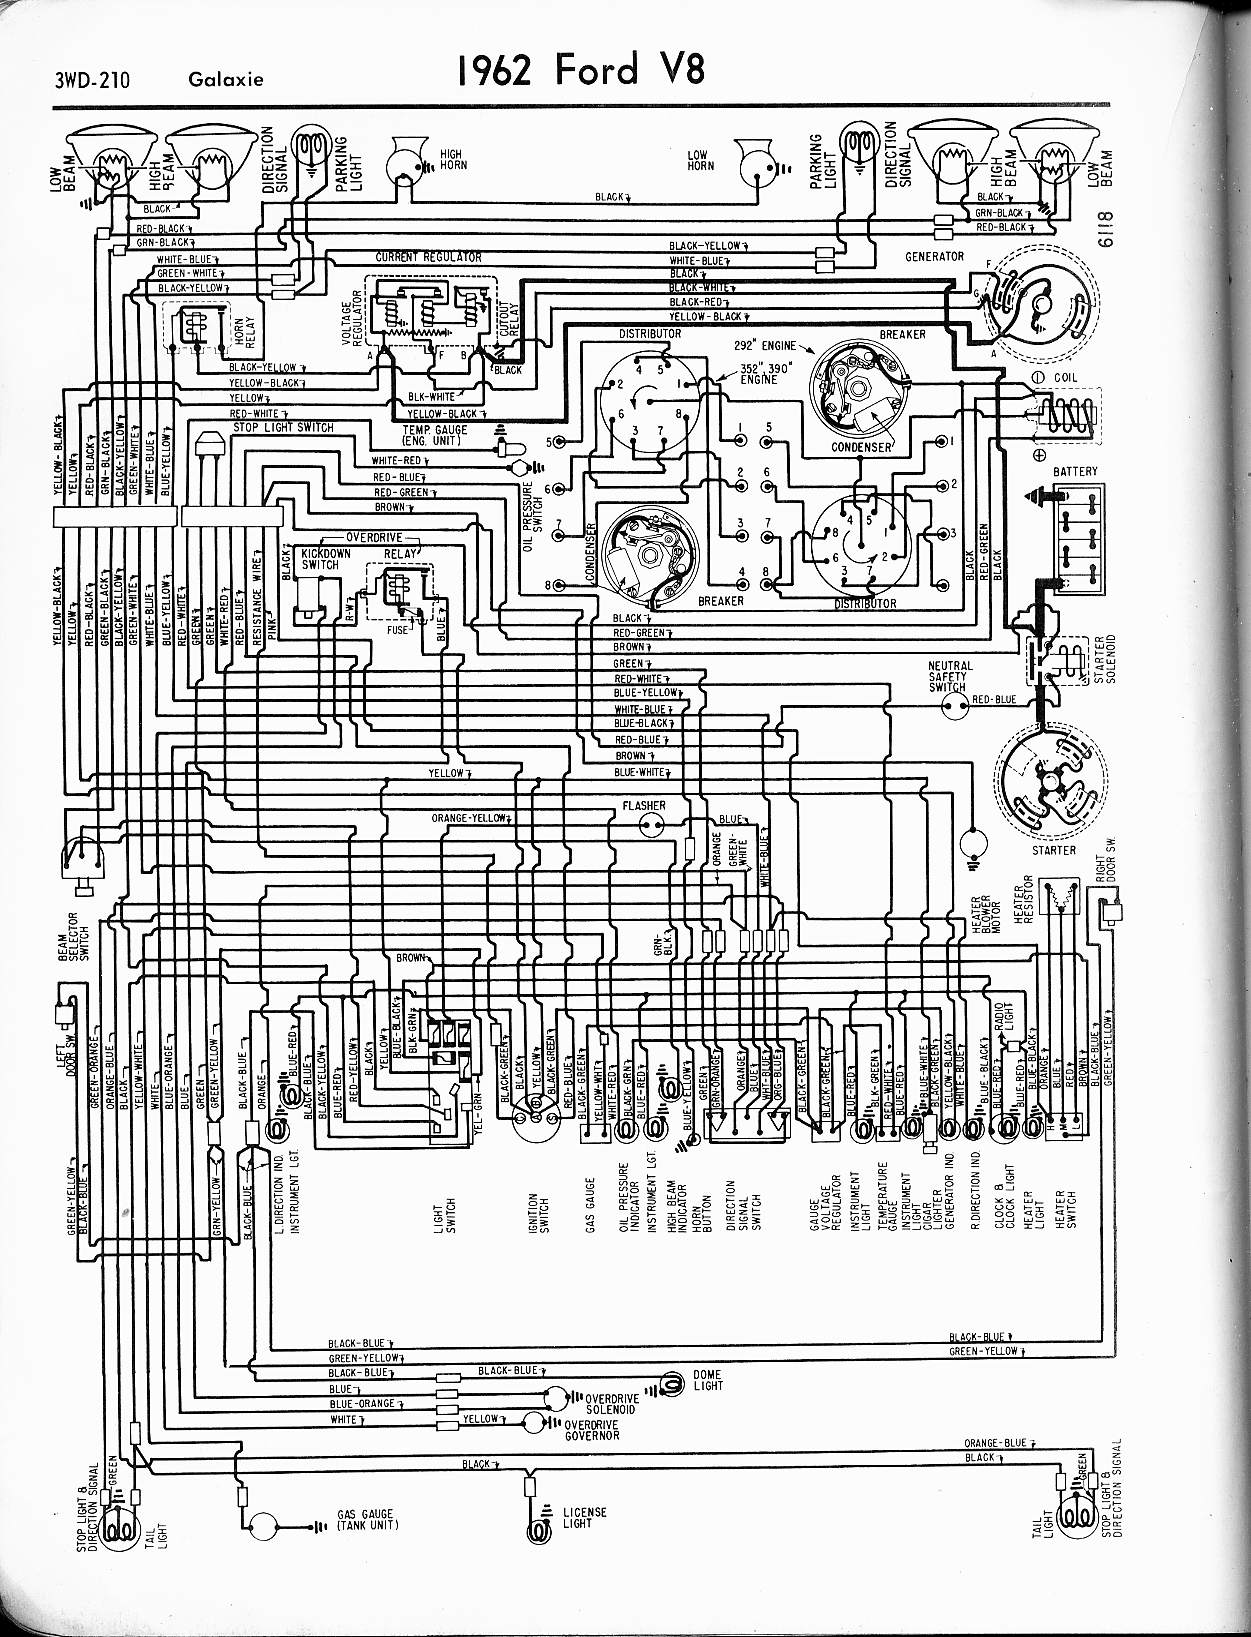 hight resolution of 62 ford generator wiring diagram just wiring diagram 62 ford generator wiring diagram wiring diagram tags